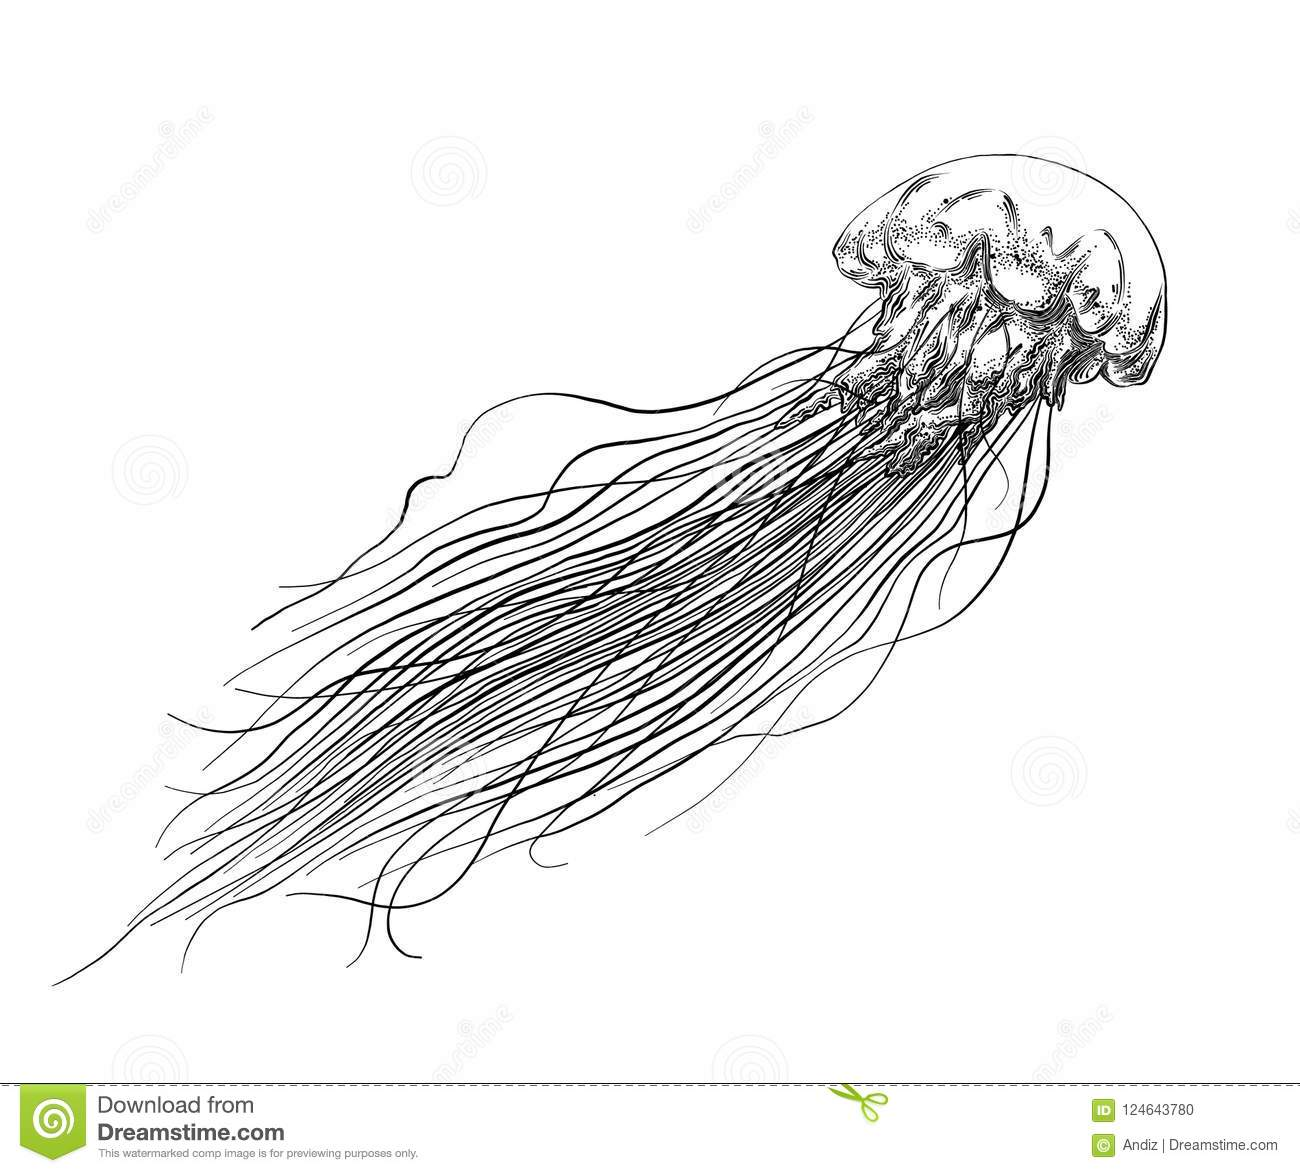 Hand Drawn Sketch Of Jellyfish In Black Isolated On White